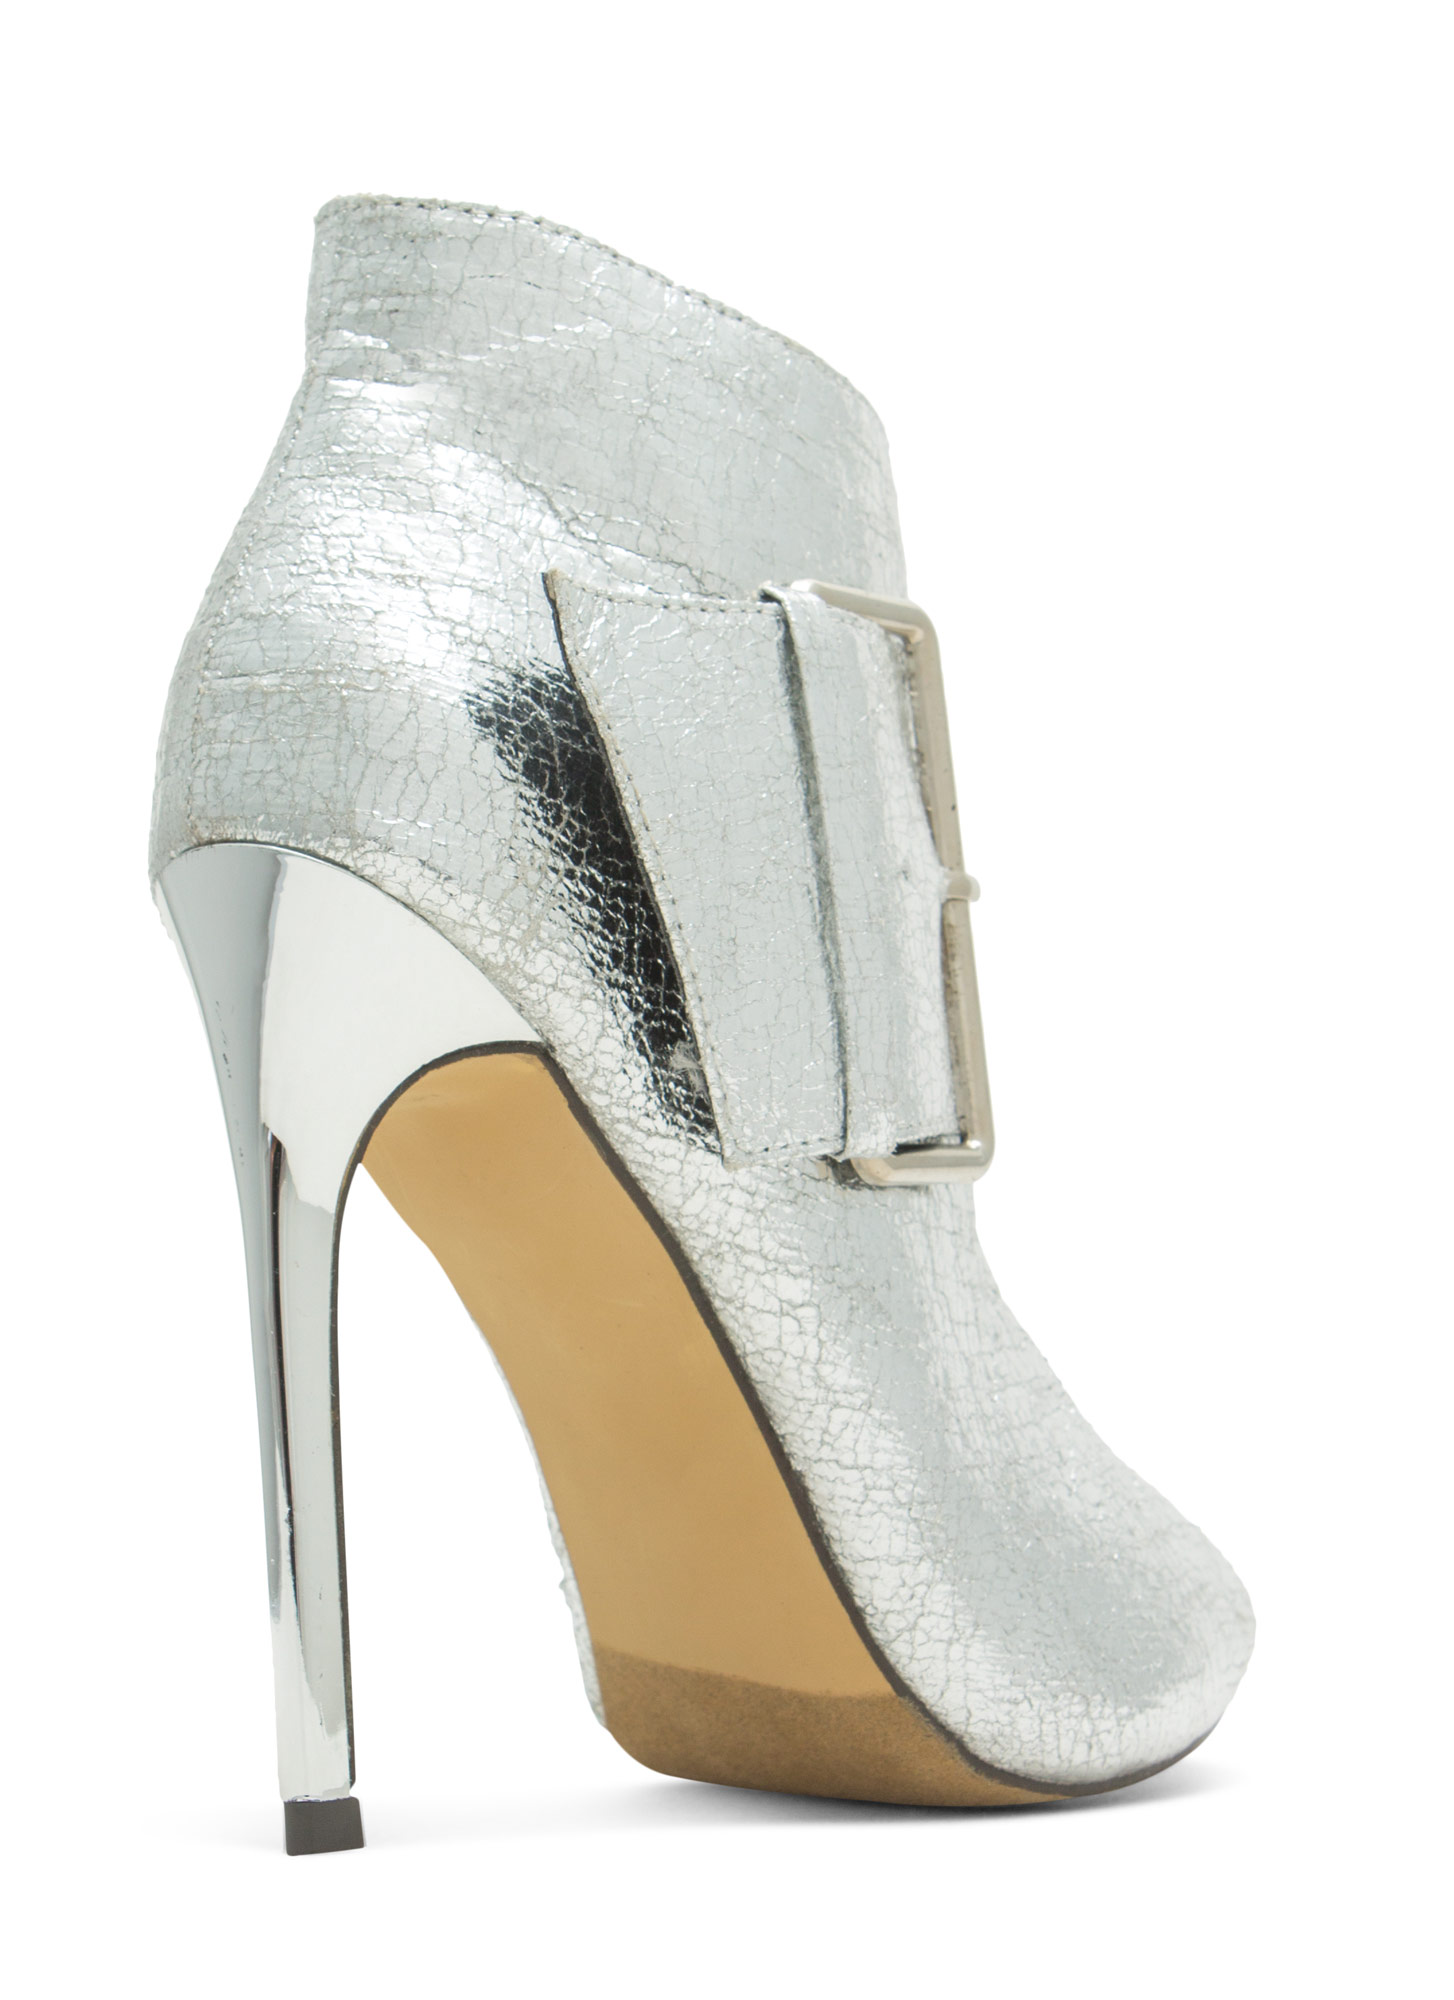 Oversized Buckle Peep-Toe Booties SILVER